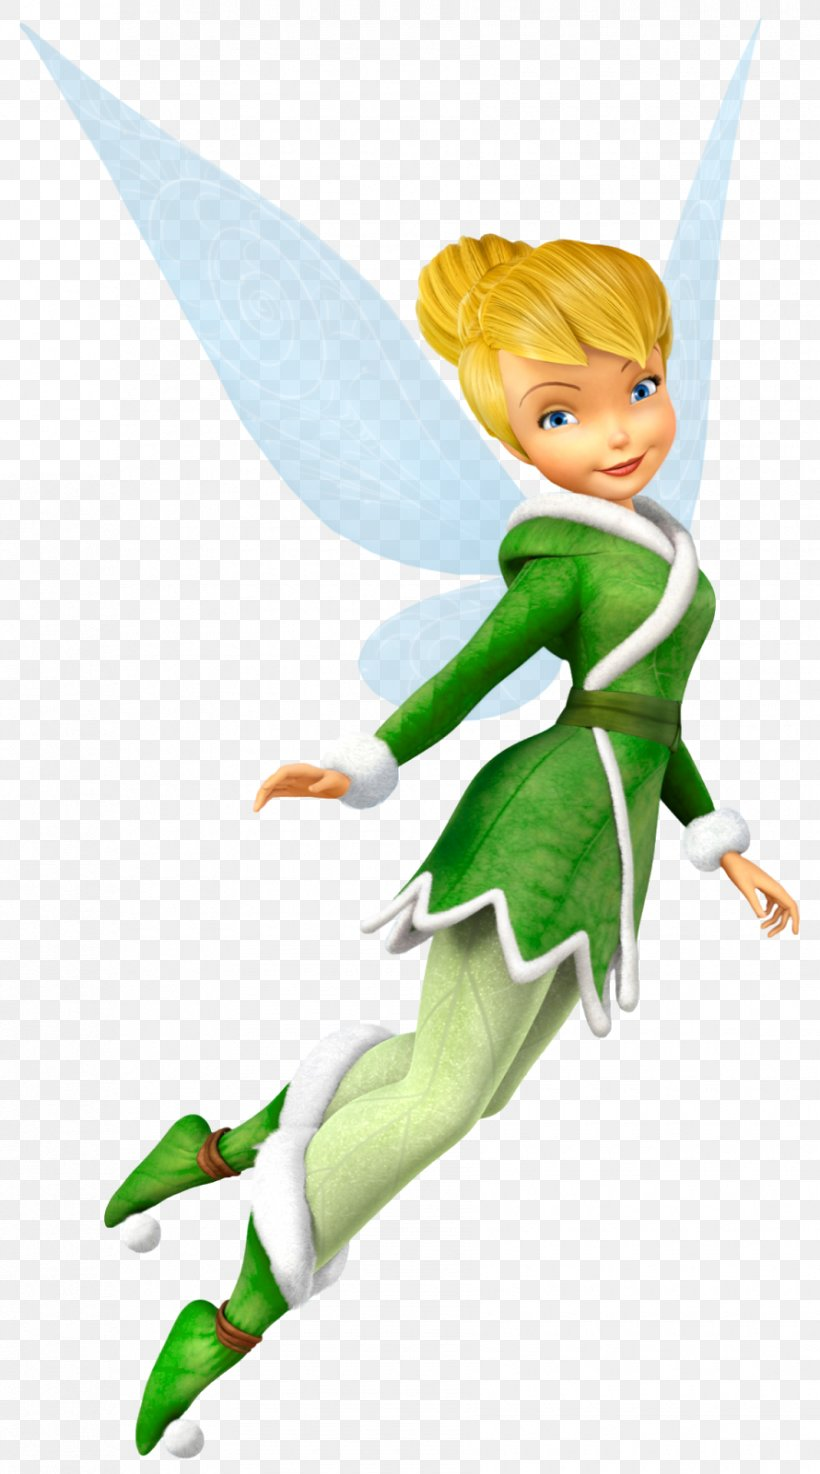 Freshly-Picked Tingle's Rosy Rupeeland Pixie Hollow Tinker Bell